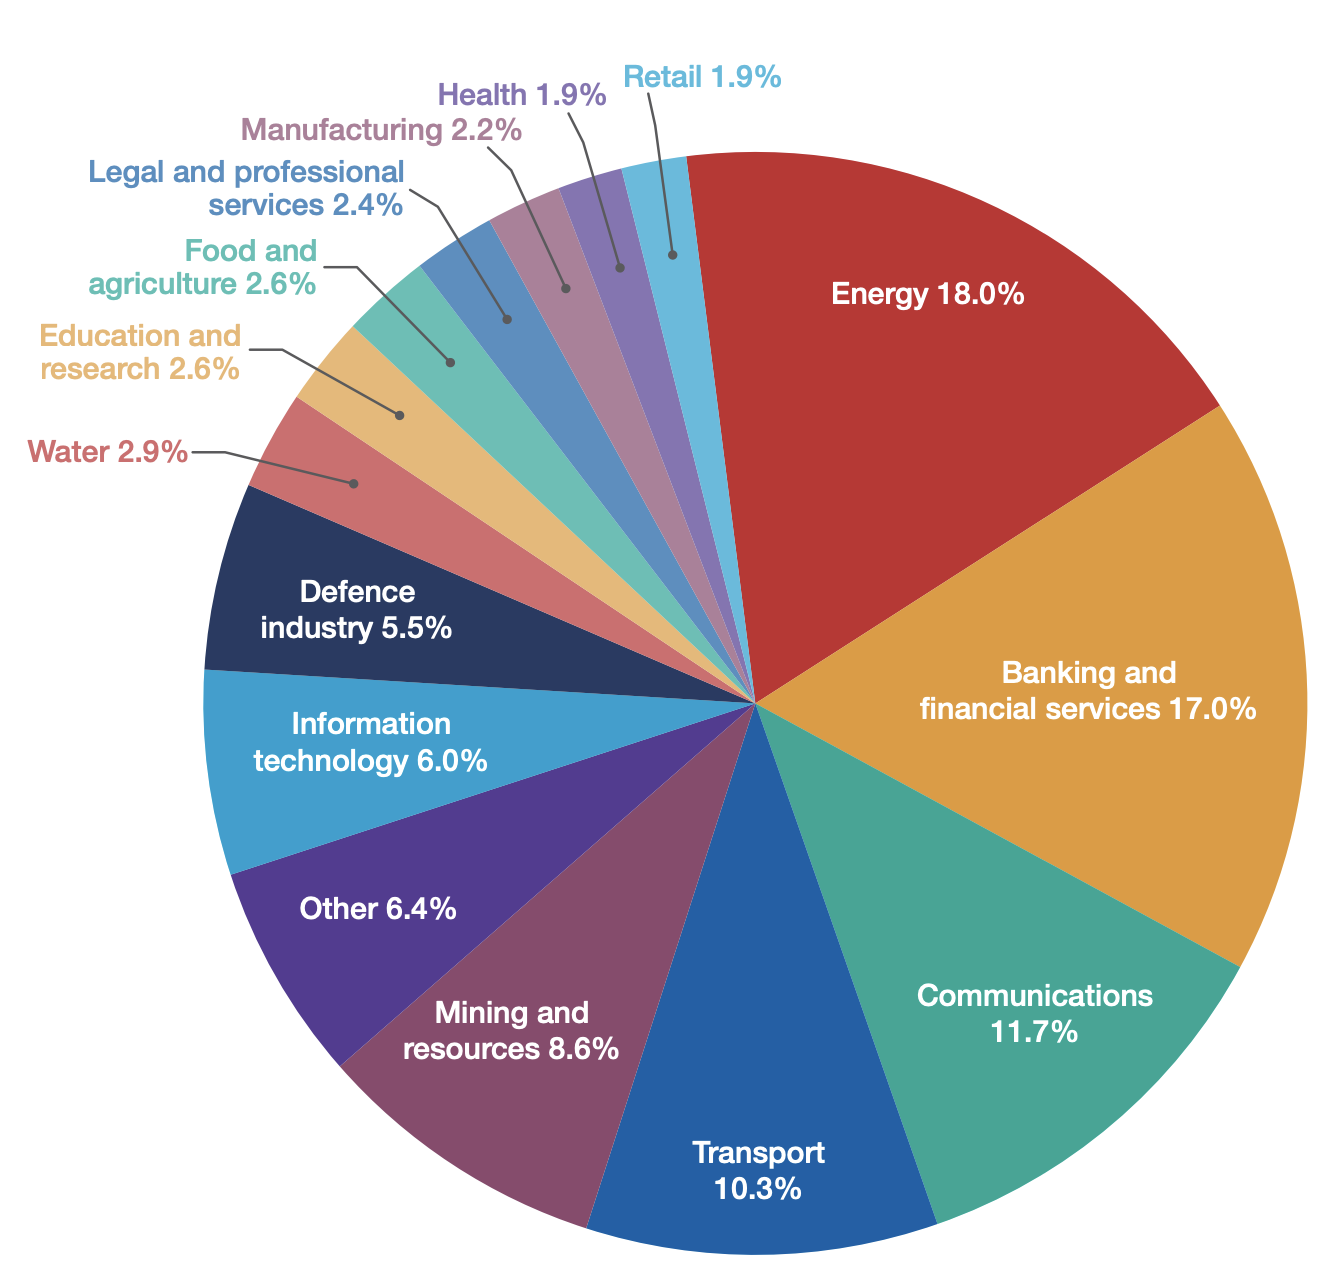 According to the Australian Cyber Security Centre's 2016 threat report, the energy and communications sectors had the highest number of compromised systems; the energy and mining/resources received the highest number of malicious emails.